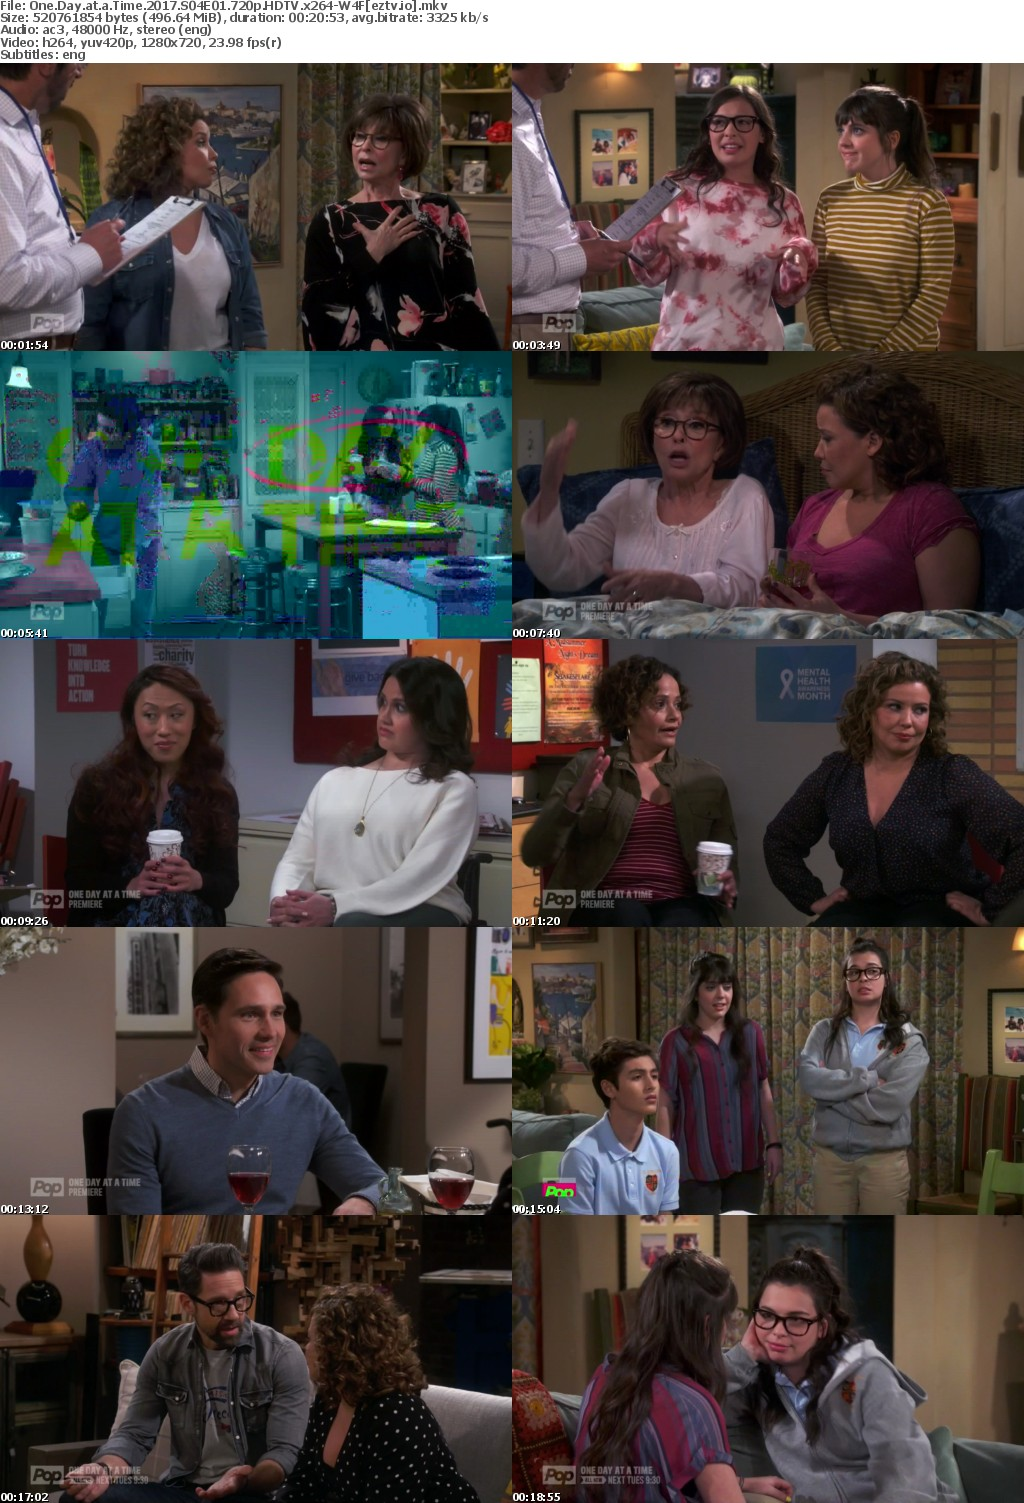 One Day at a Time 2017 S04E01 720p HDTV x264-W4F